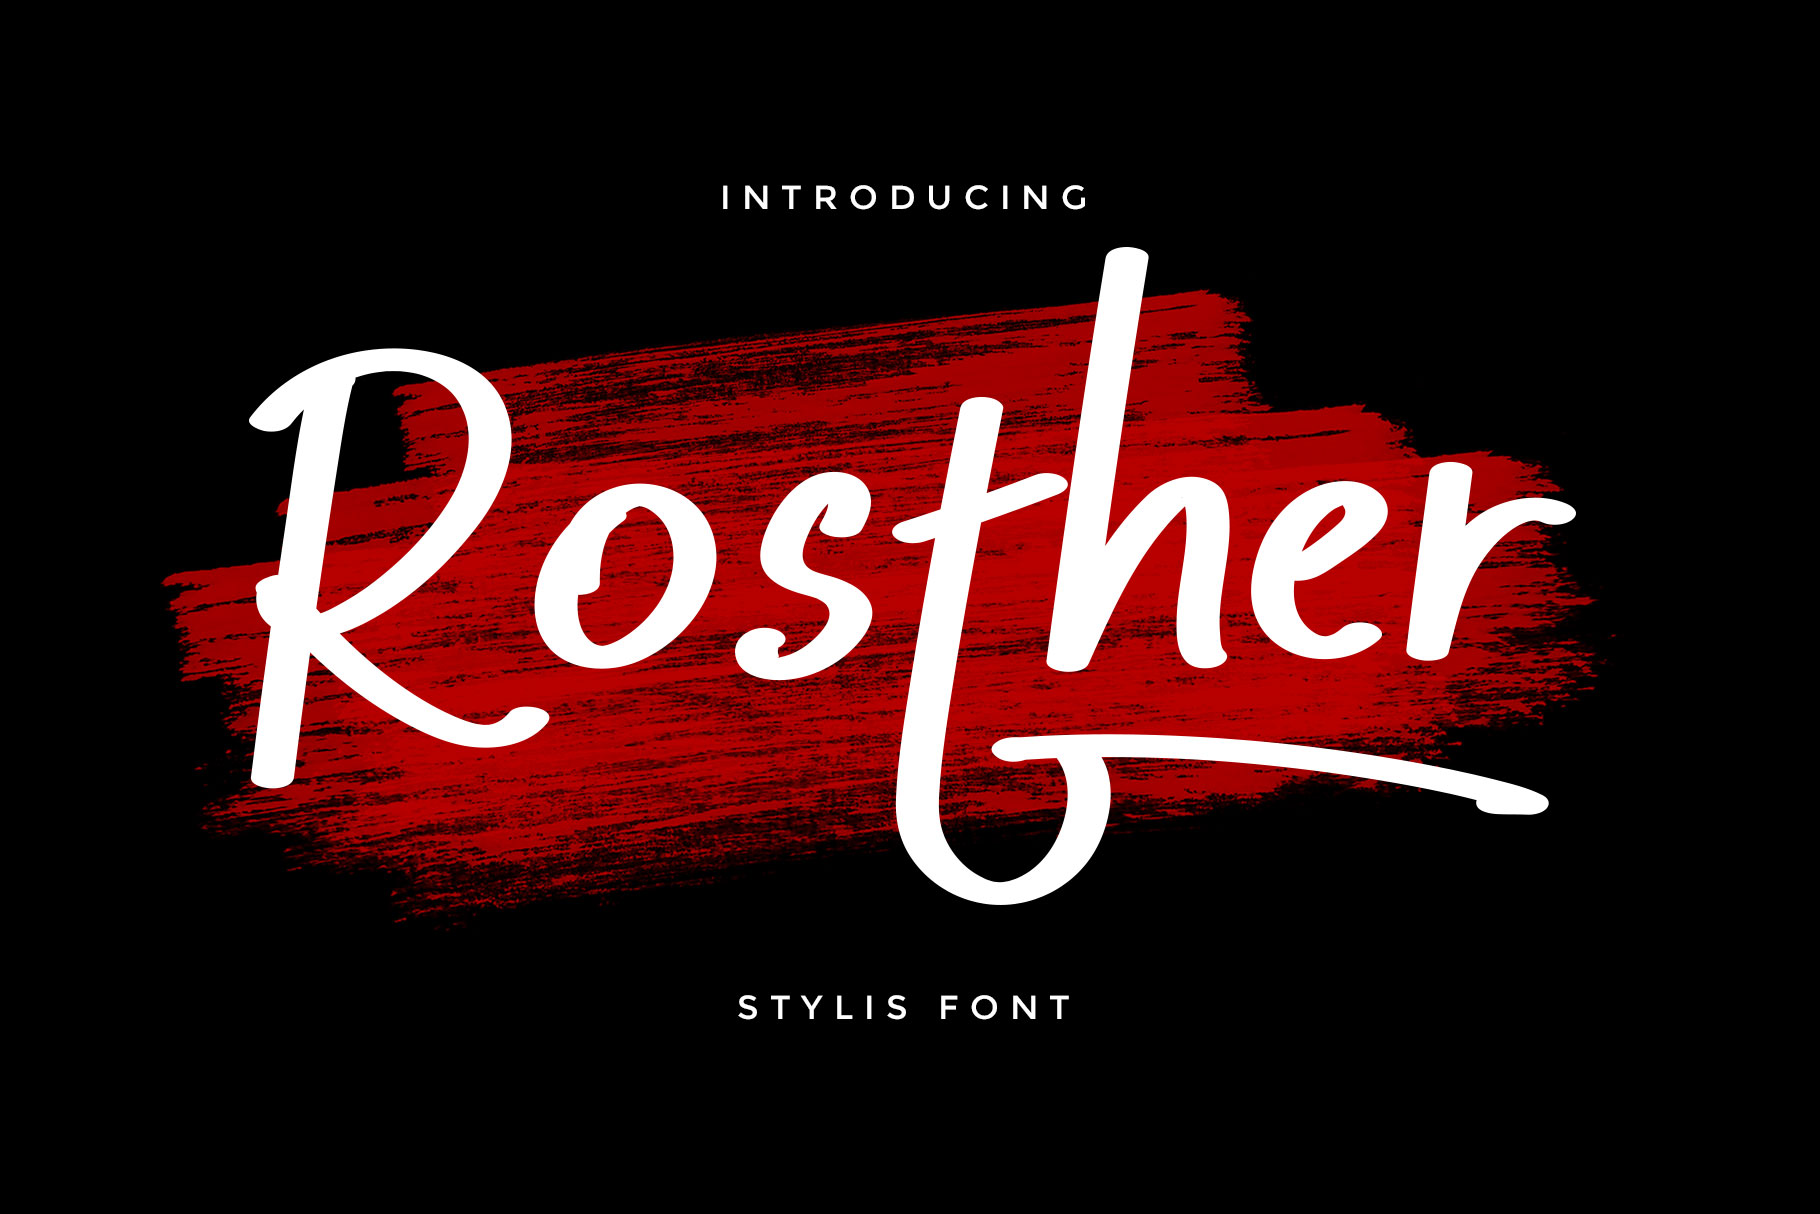 01_Rosther